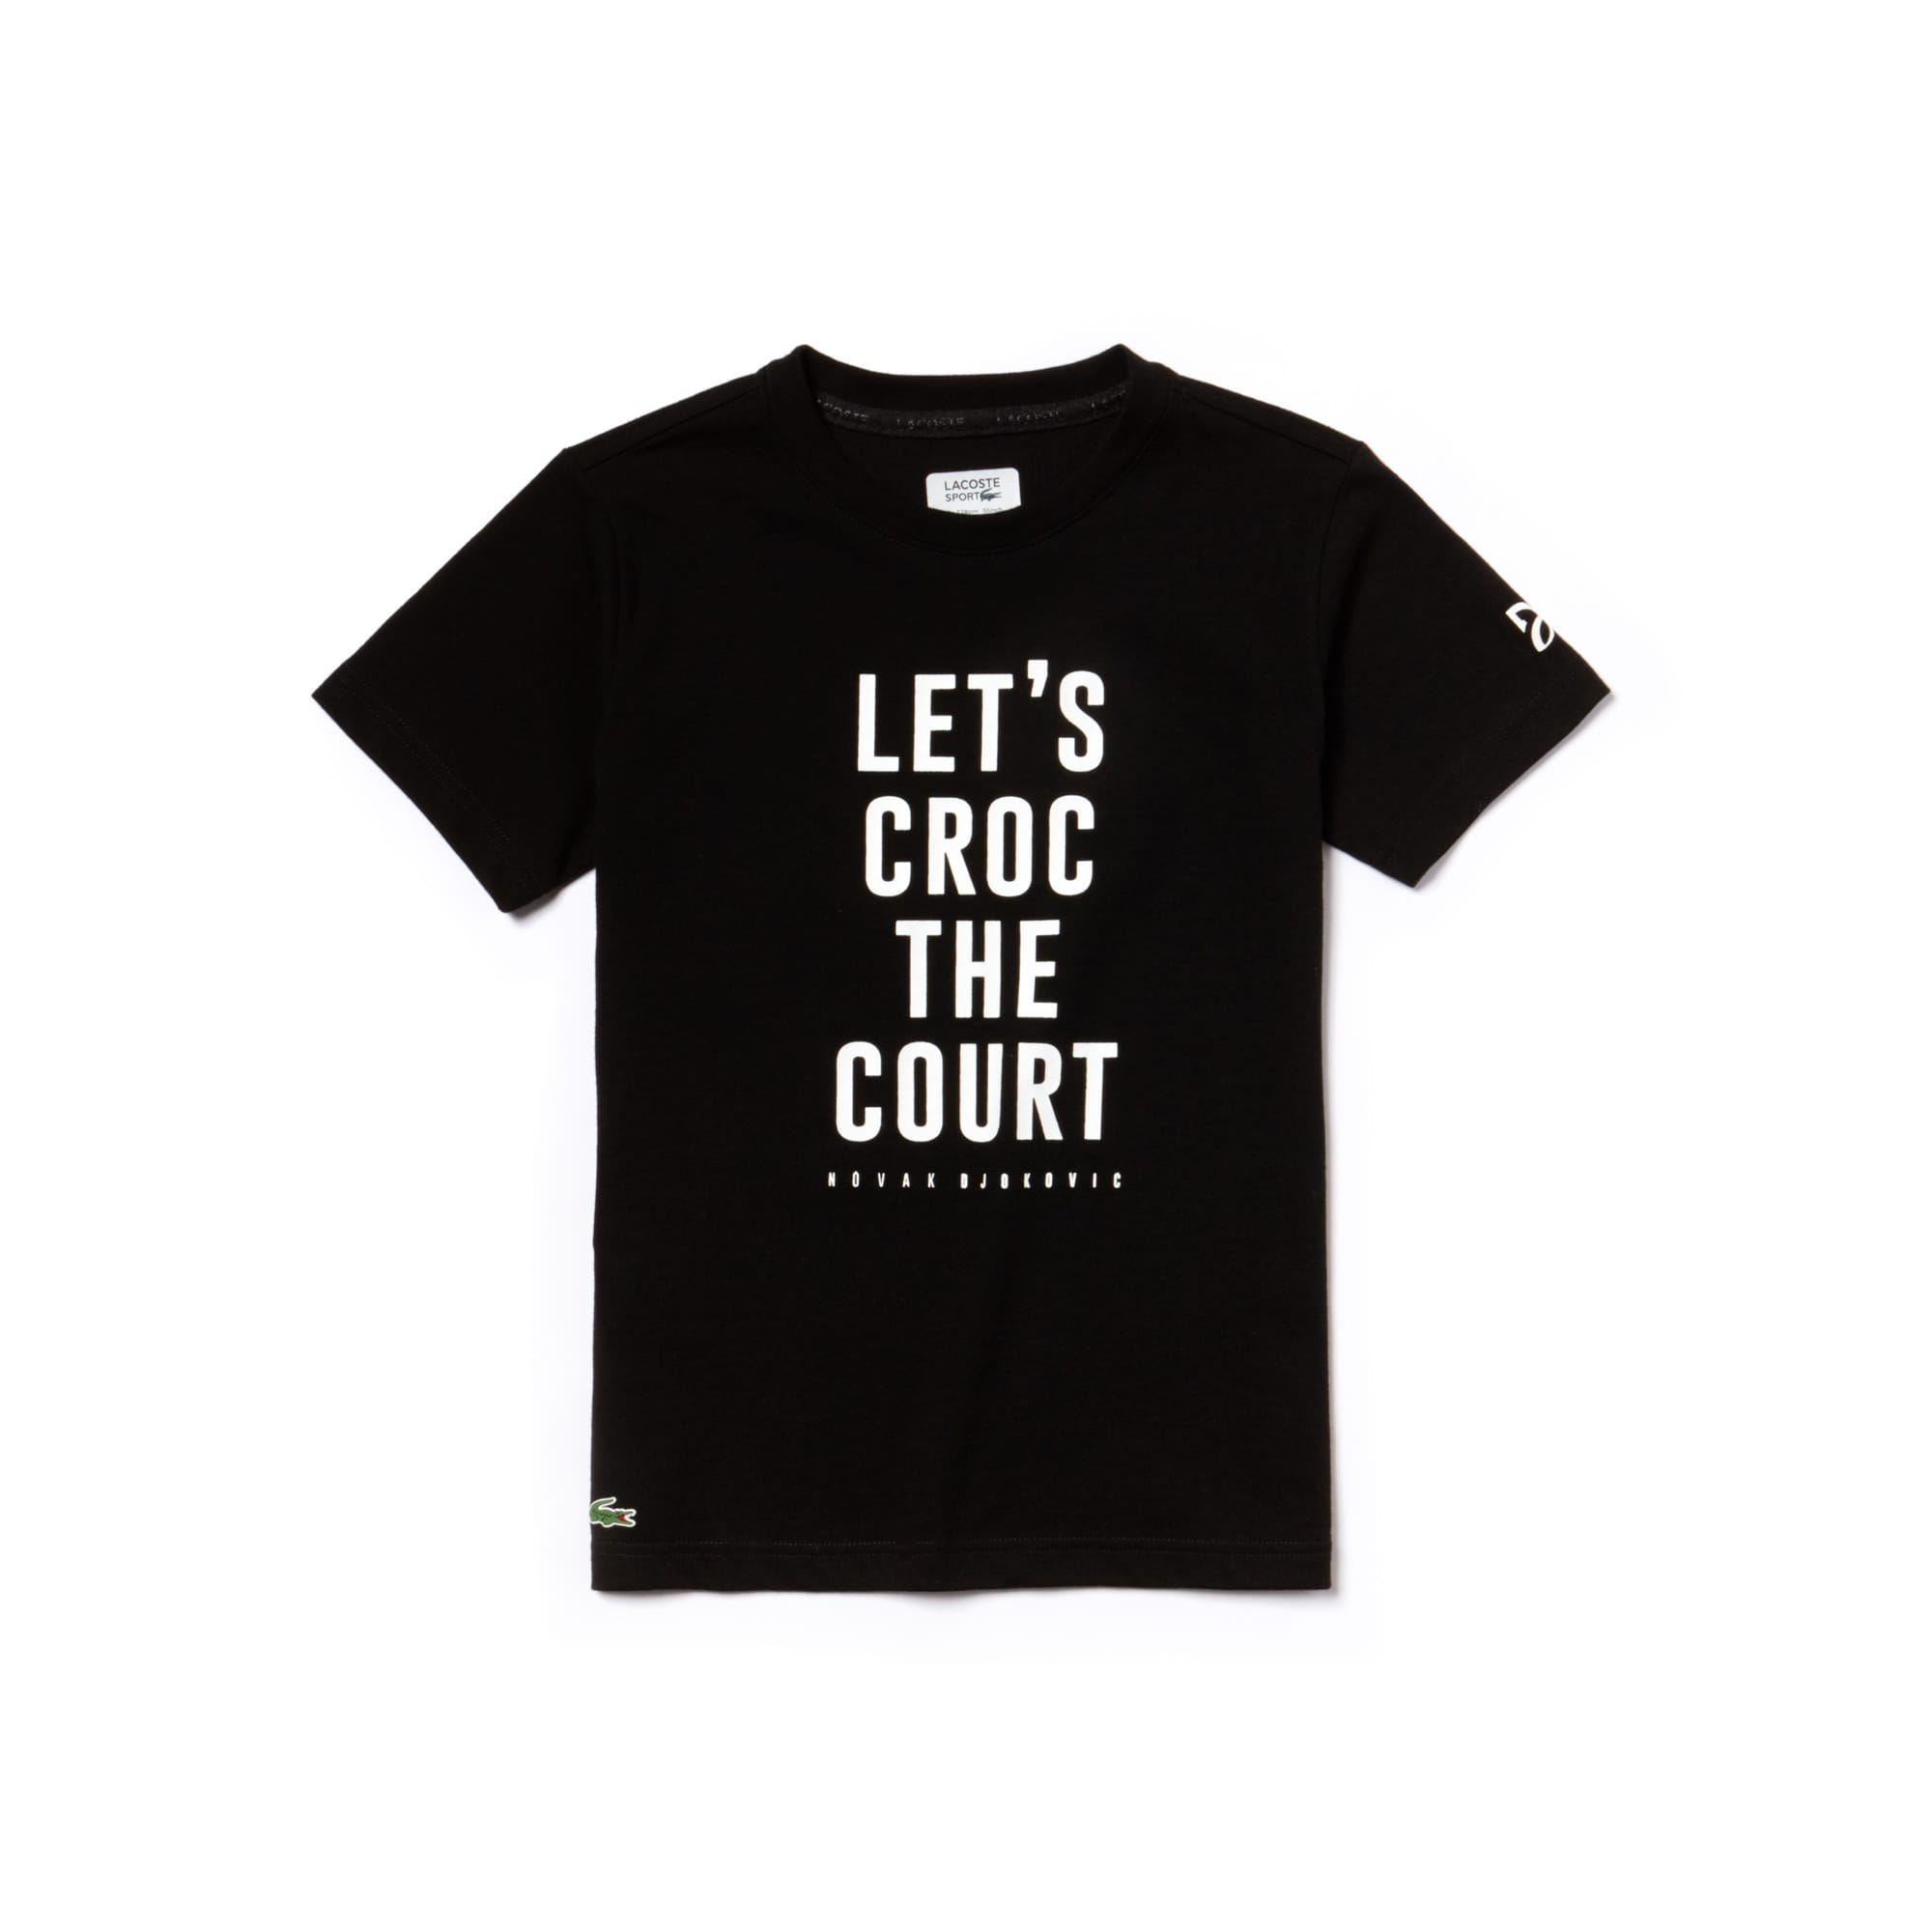 Boys' Lacoste SPORT NOVAK DJOKOVIC SUPPORT WITH STYLE - OFF COURT COLLECTION Lettering Technical Jersey T-shirt